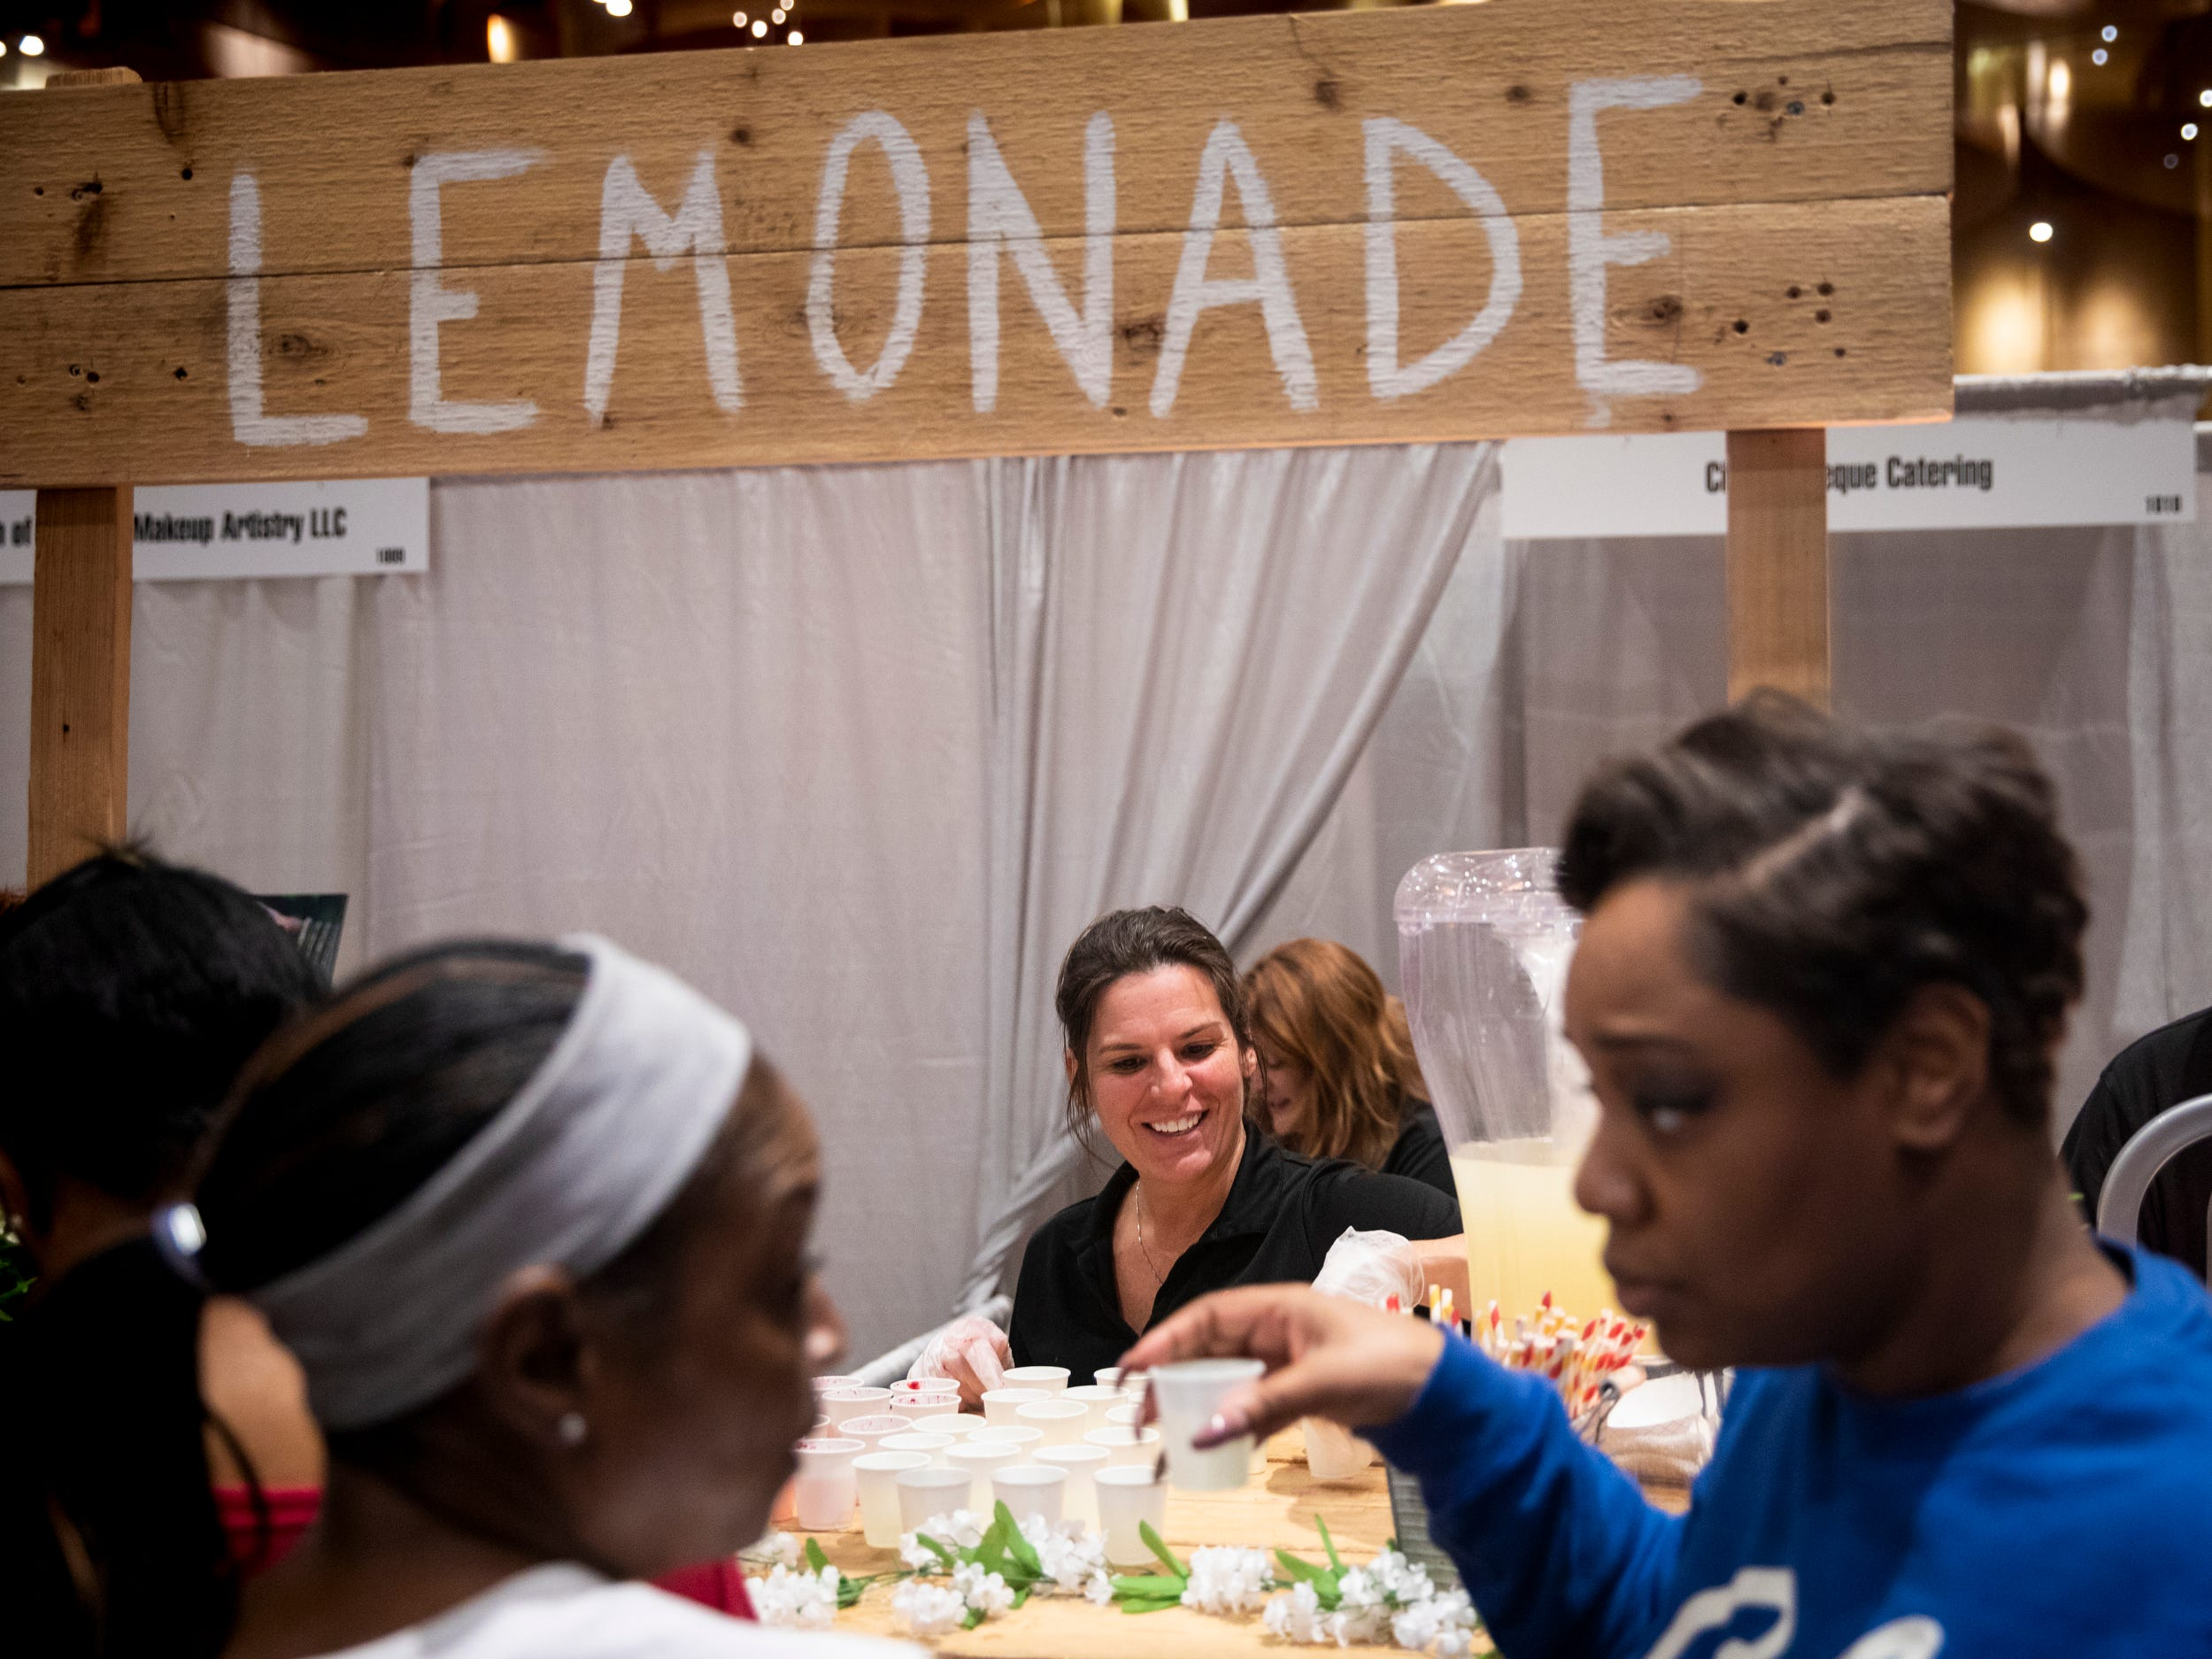 Hillary Fishel serves refreshing drinks from a lemonade stand at City Barbecue's booth at the Wendy's Bridal Show at the Duke Energy Convention Center Saturday, January 5, 2019 in Downtown Cincinnati.